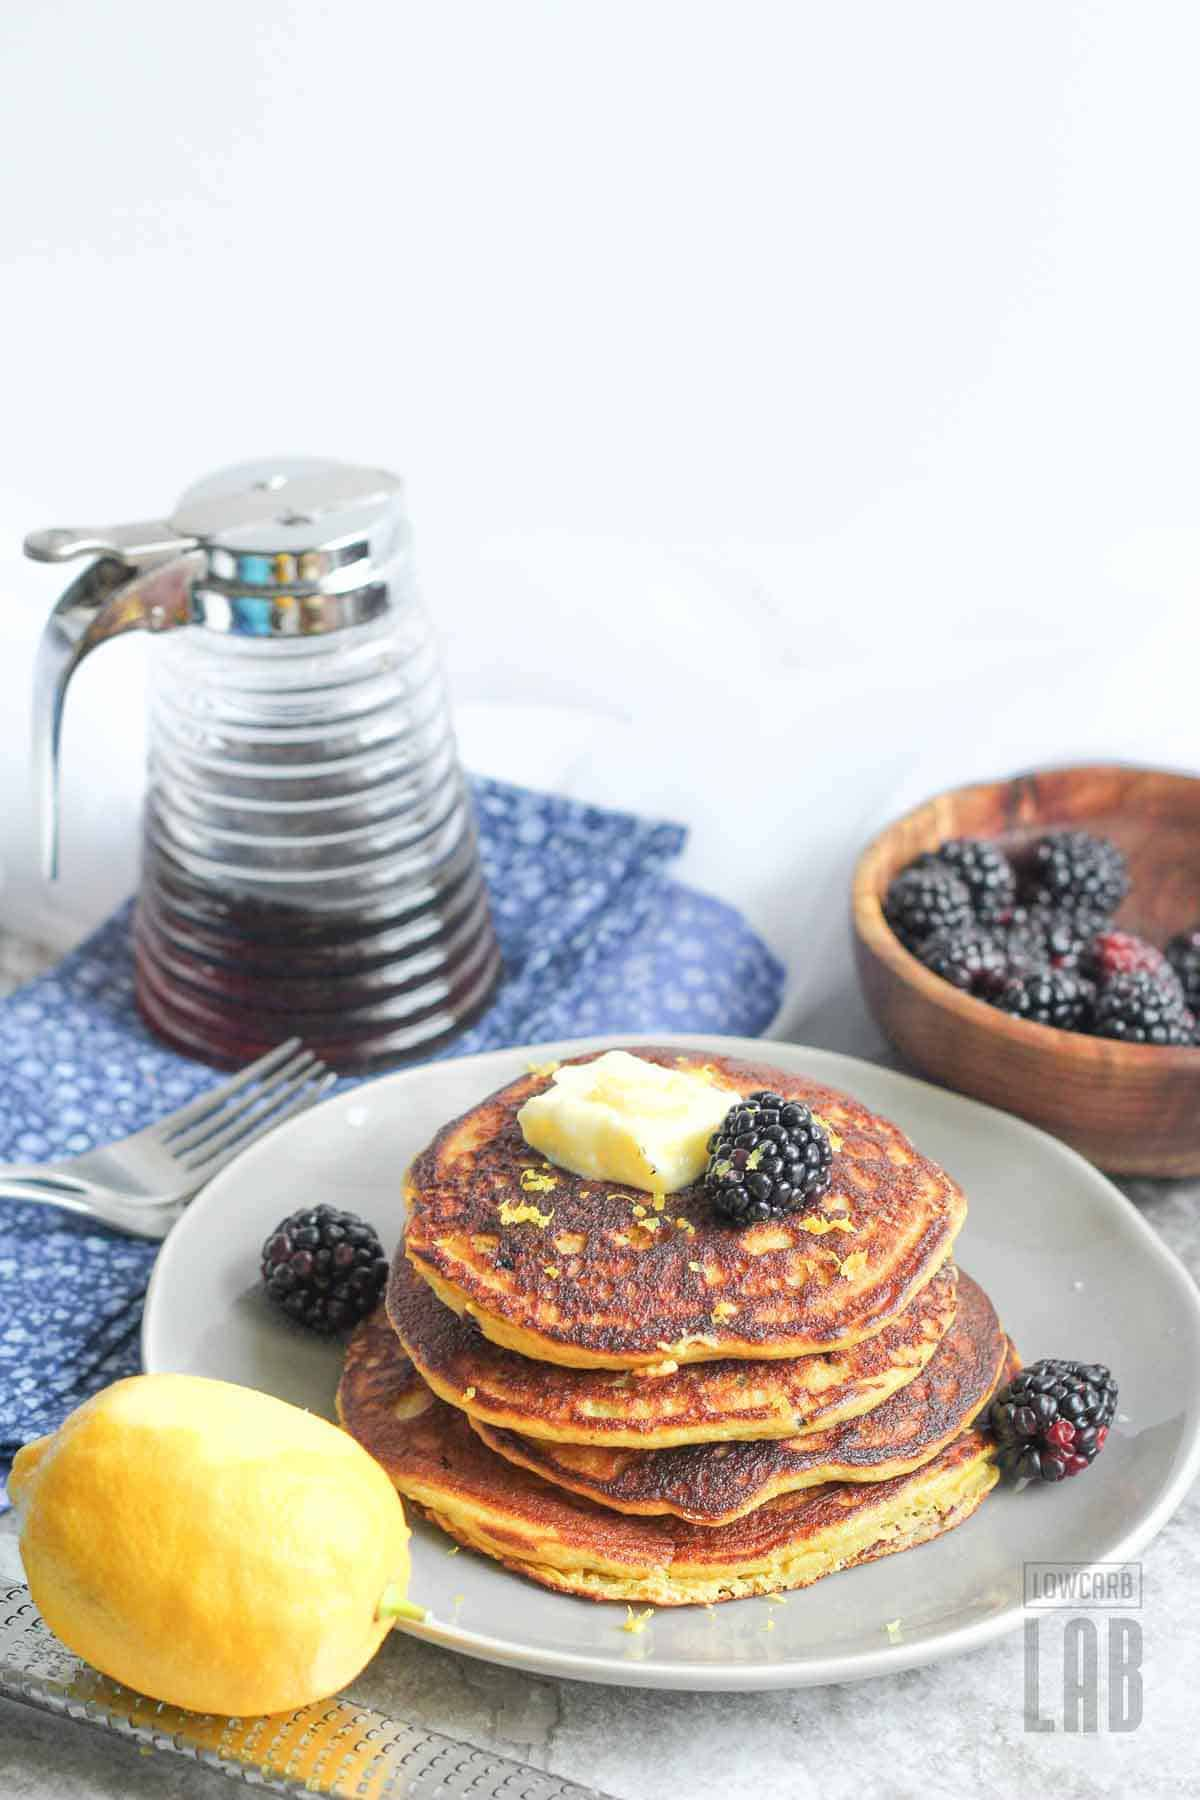 Low carb blackberry pancakes recipe with lemon zest